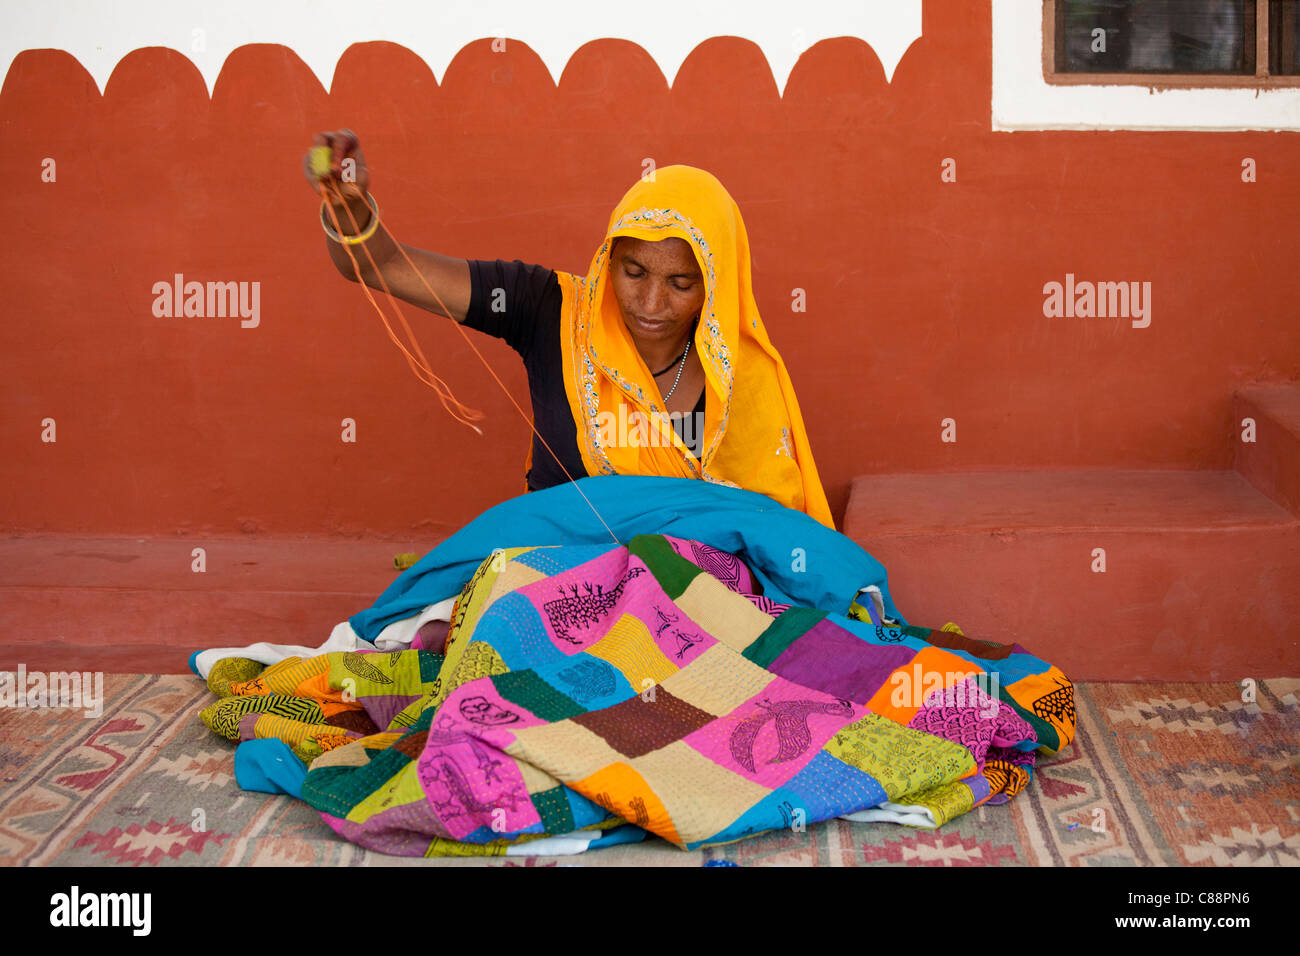 Indian woman sewing textiles at Dastkar women's craft co-operative, the Ranthambore Artisan Project, in Rajasthan, - Stock Image